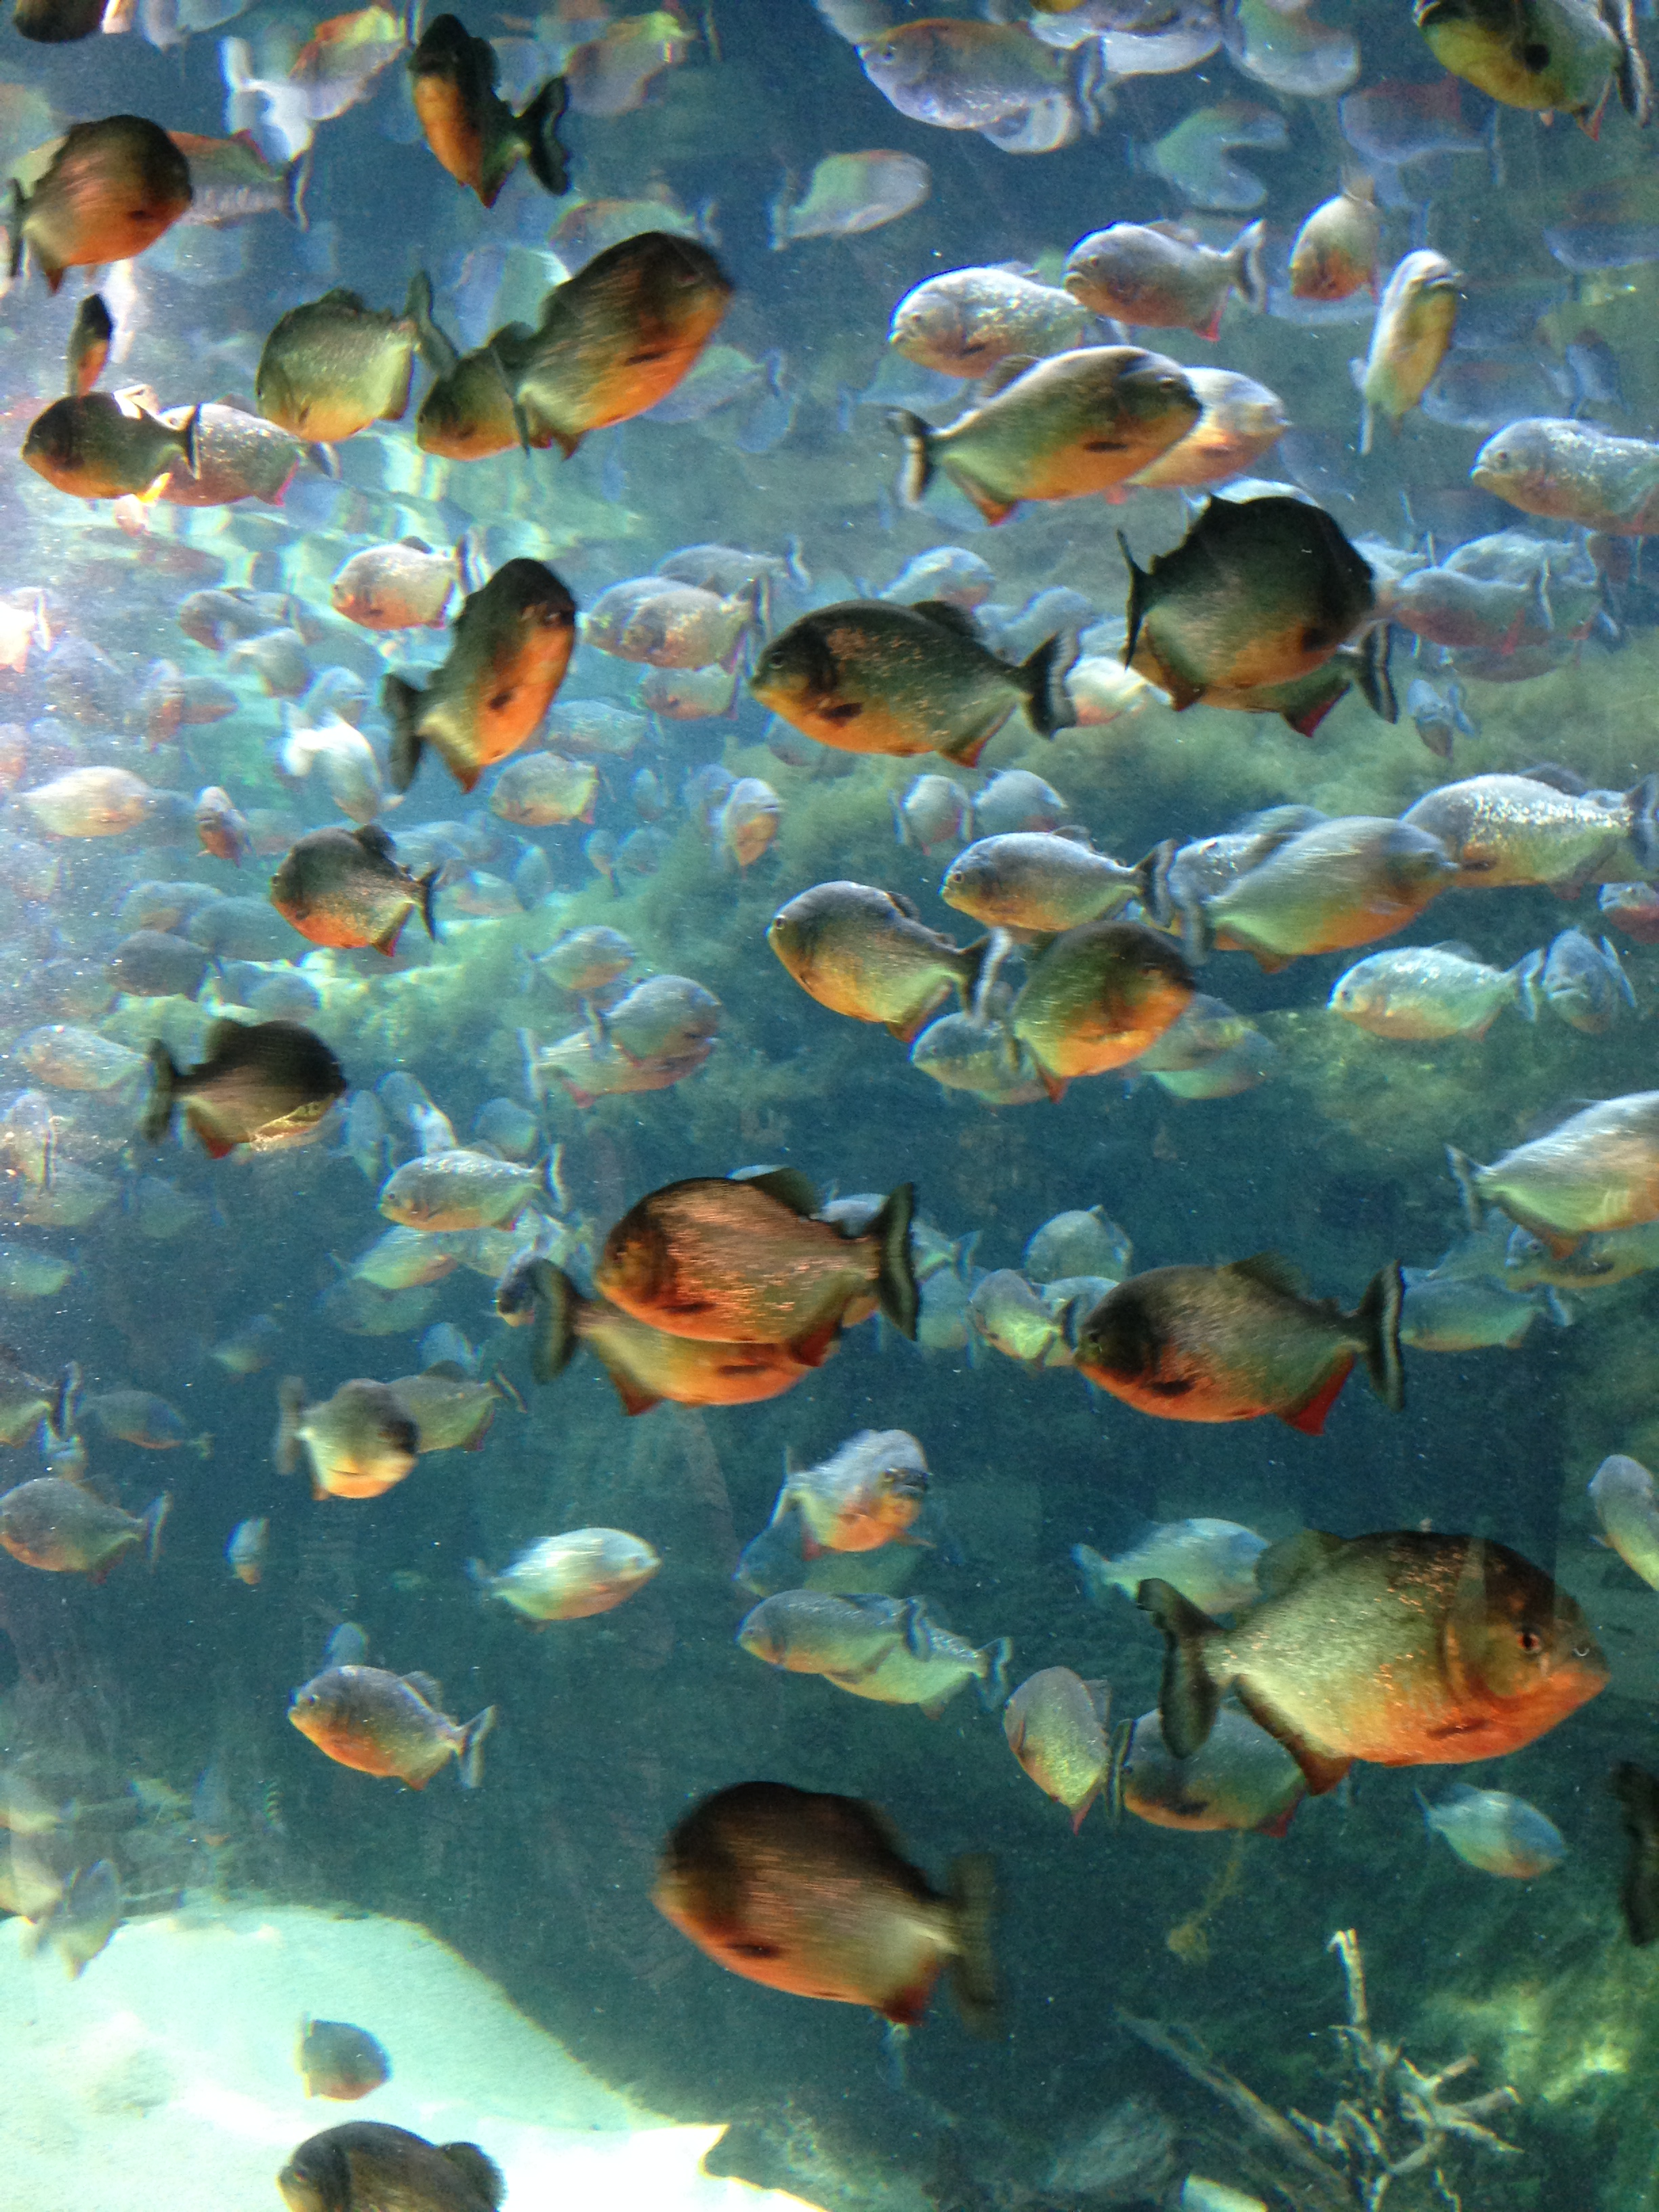 Aquarium_Piranhabecken